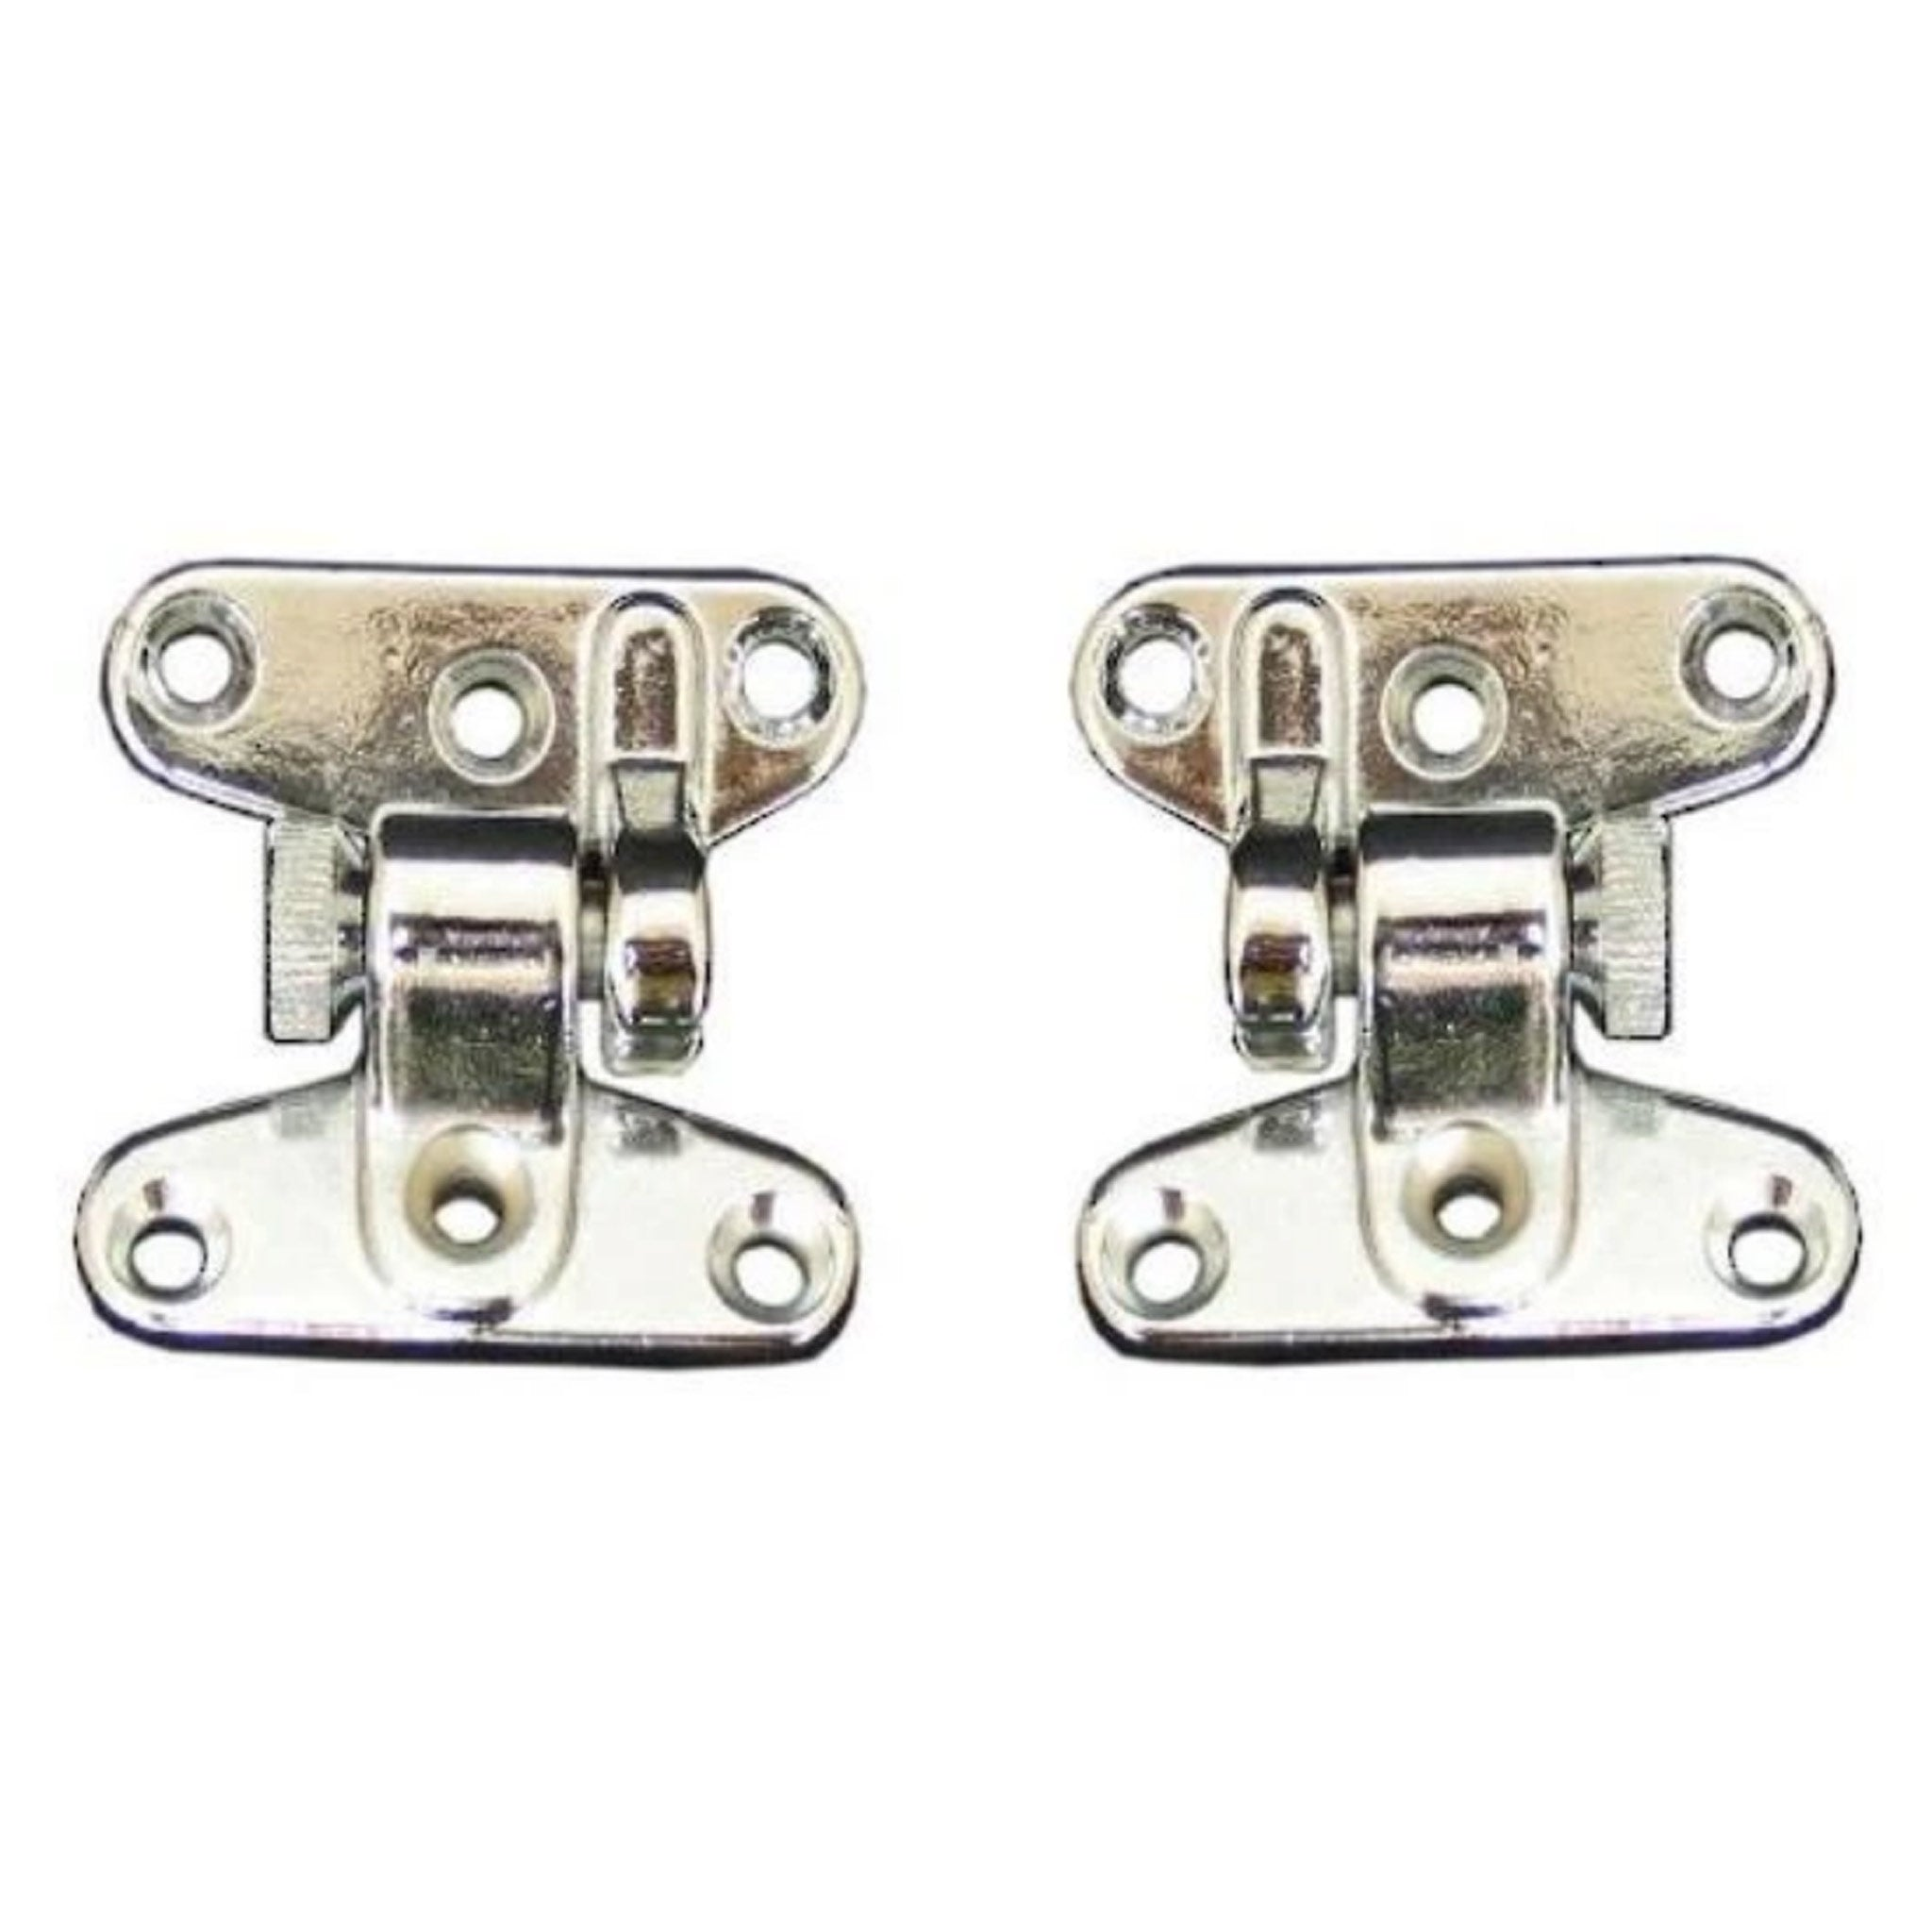 Davey Separating Hinge (Sold In Pairs)